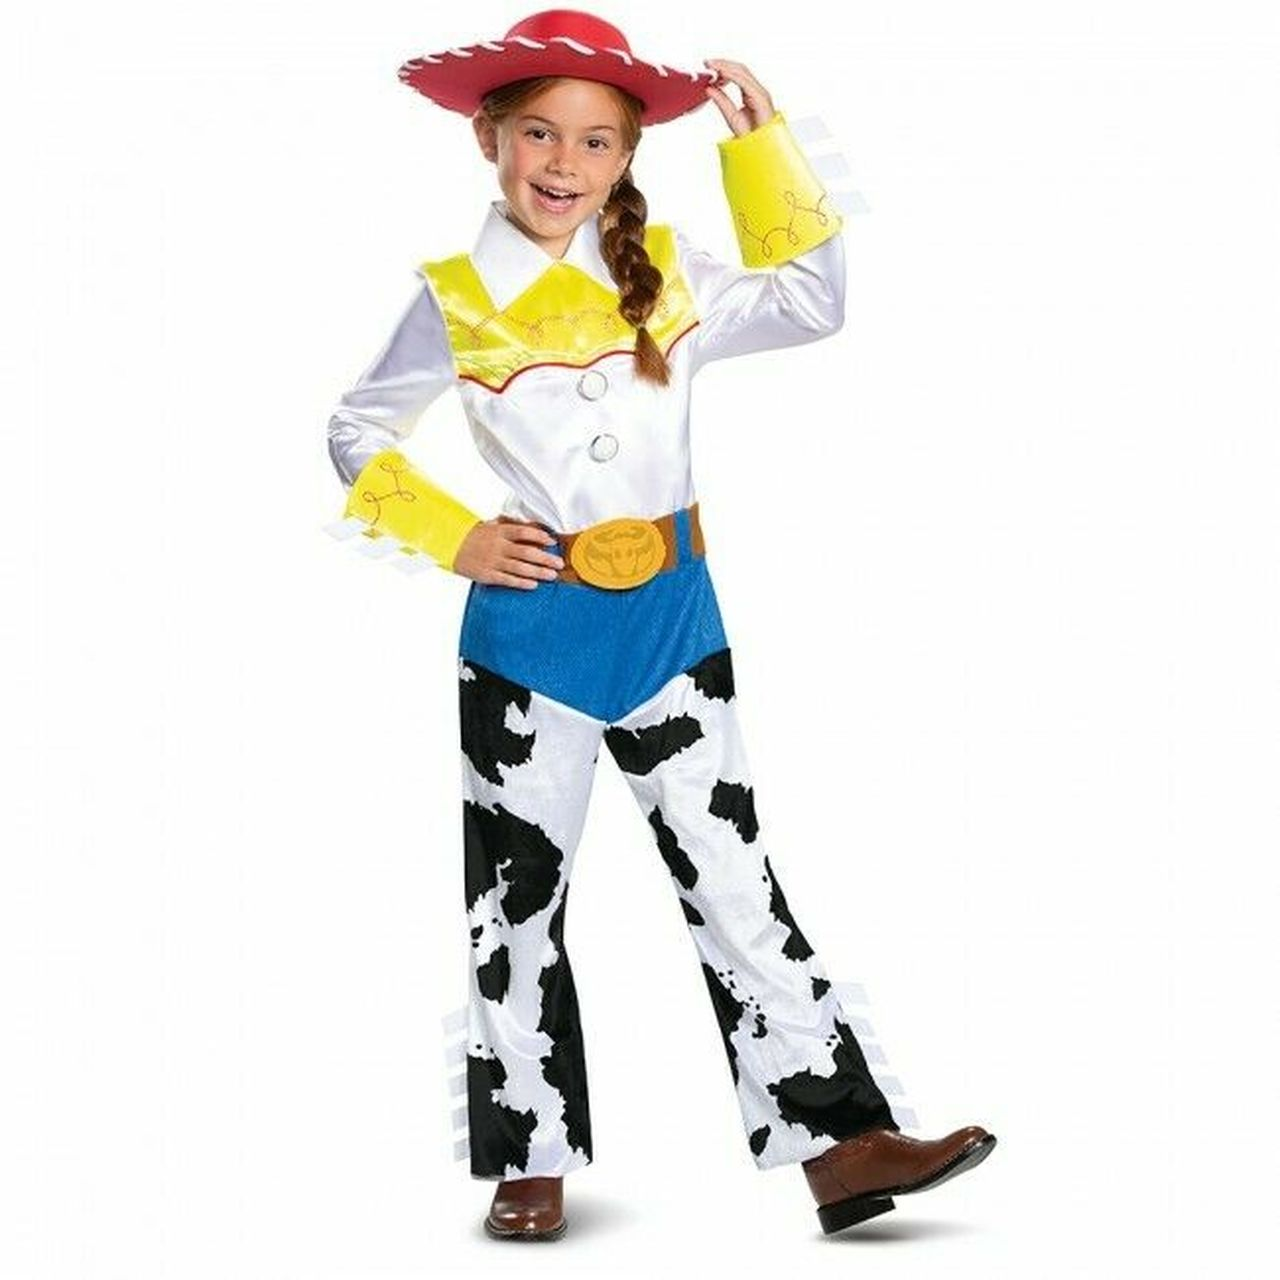 TOY STORY 4 DELUXE JESSIE COSTUME FOR GIRLS